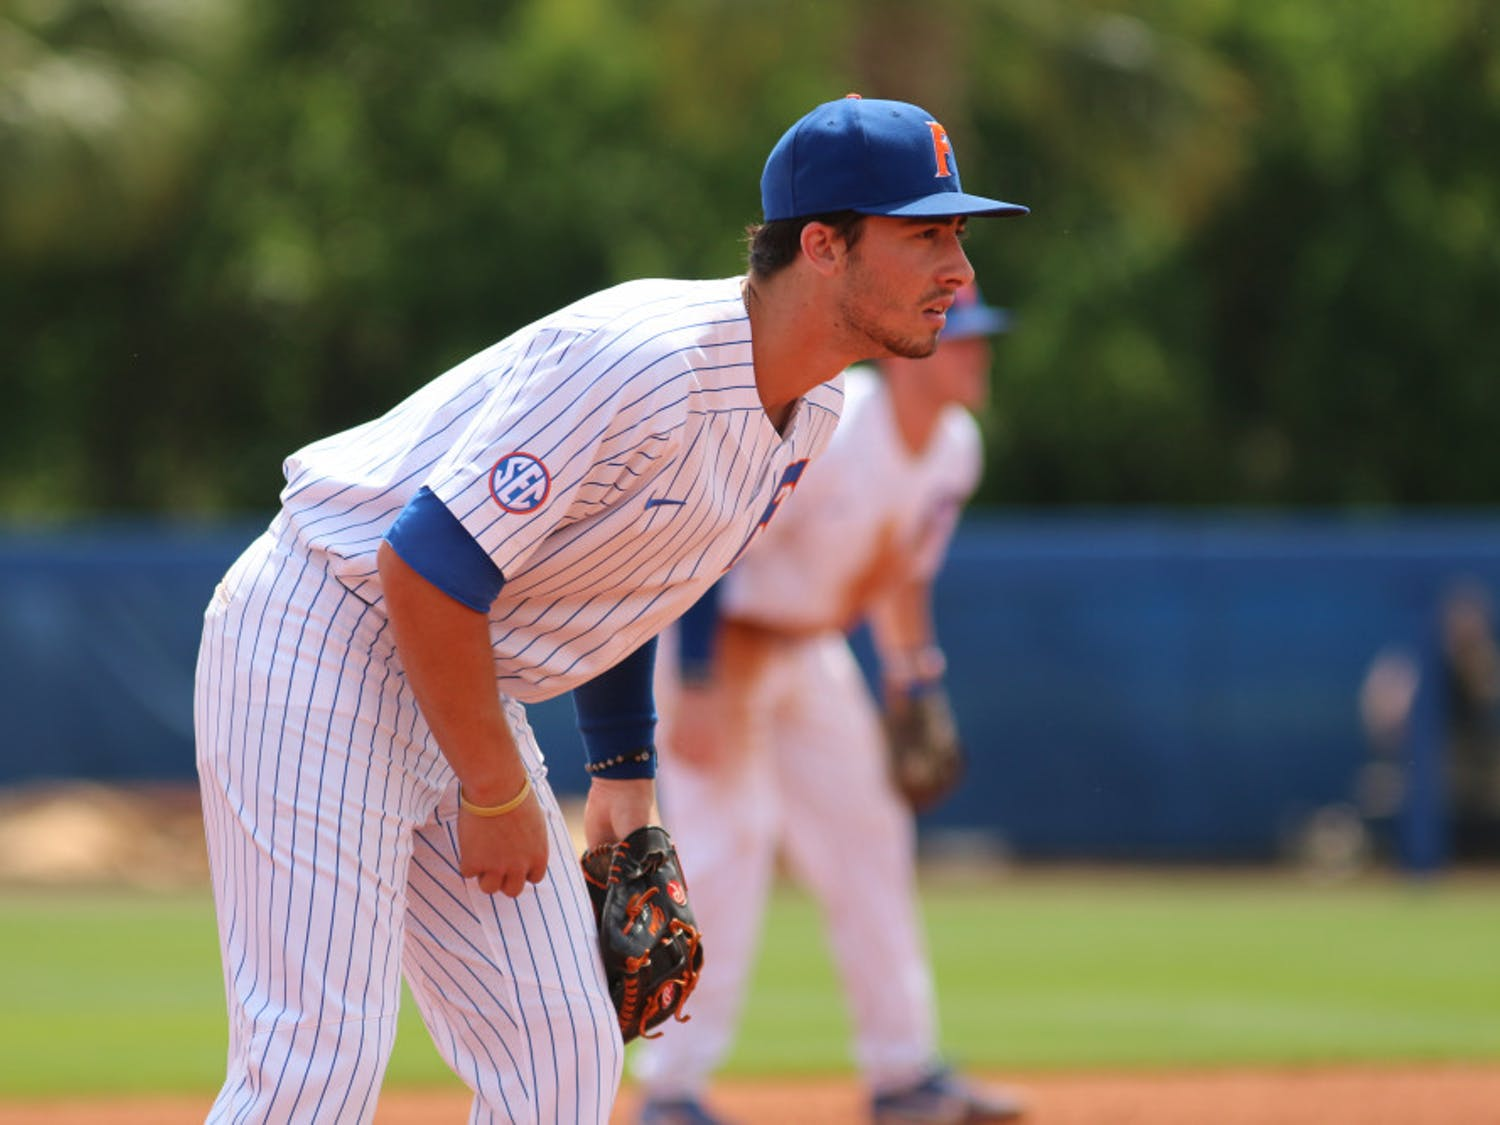 Third baseman Jonathan India went 2 for 5 with four RBIs in UF's 6-1 victory over Texas at the College World Series Tuesday. He gave the Gators a five-run lead with a three-run homer in the sixth inning.